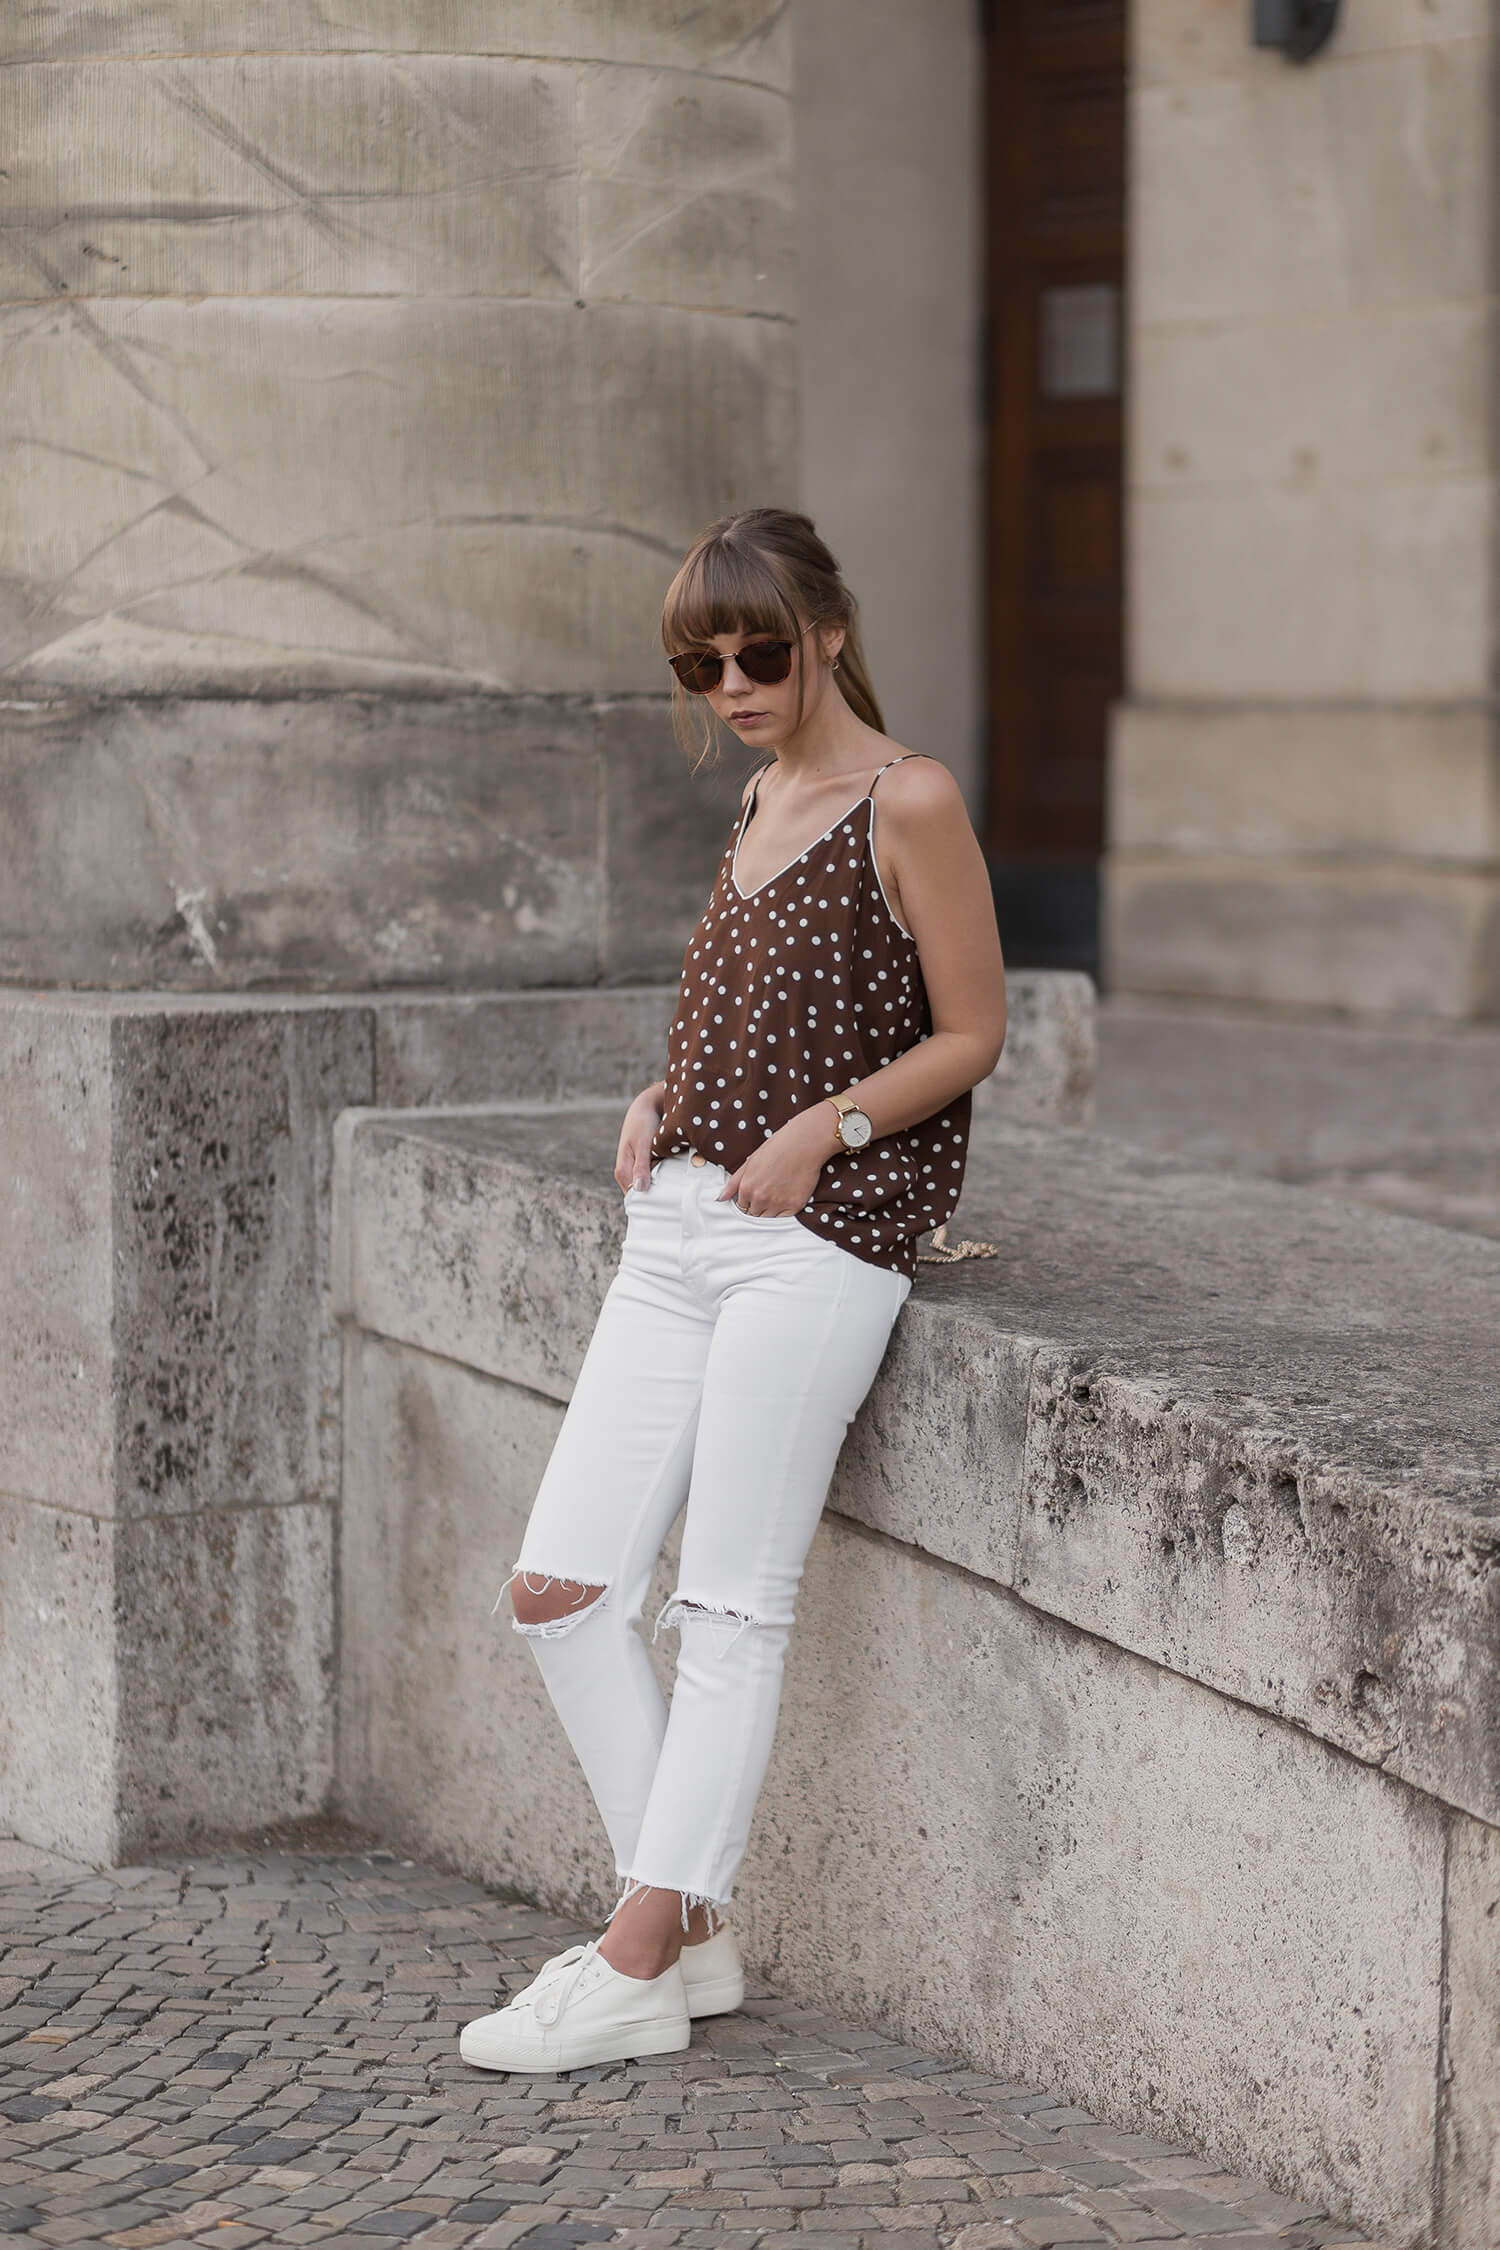 Spaghetti Top Outfit, Sommer Trend 2018, Shoelove by Deichmann